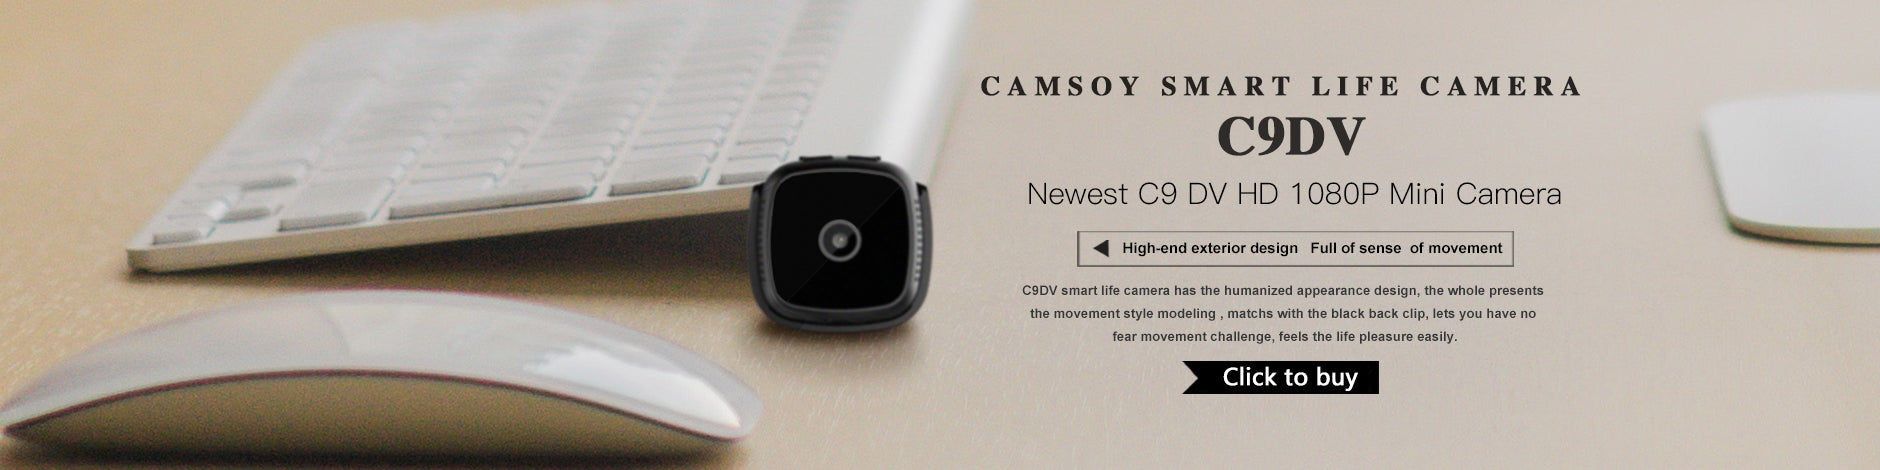 CAMSOY Official Website The World's Most Popular Mini